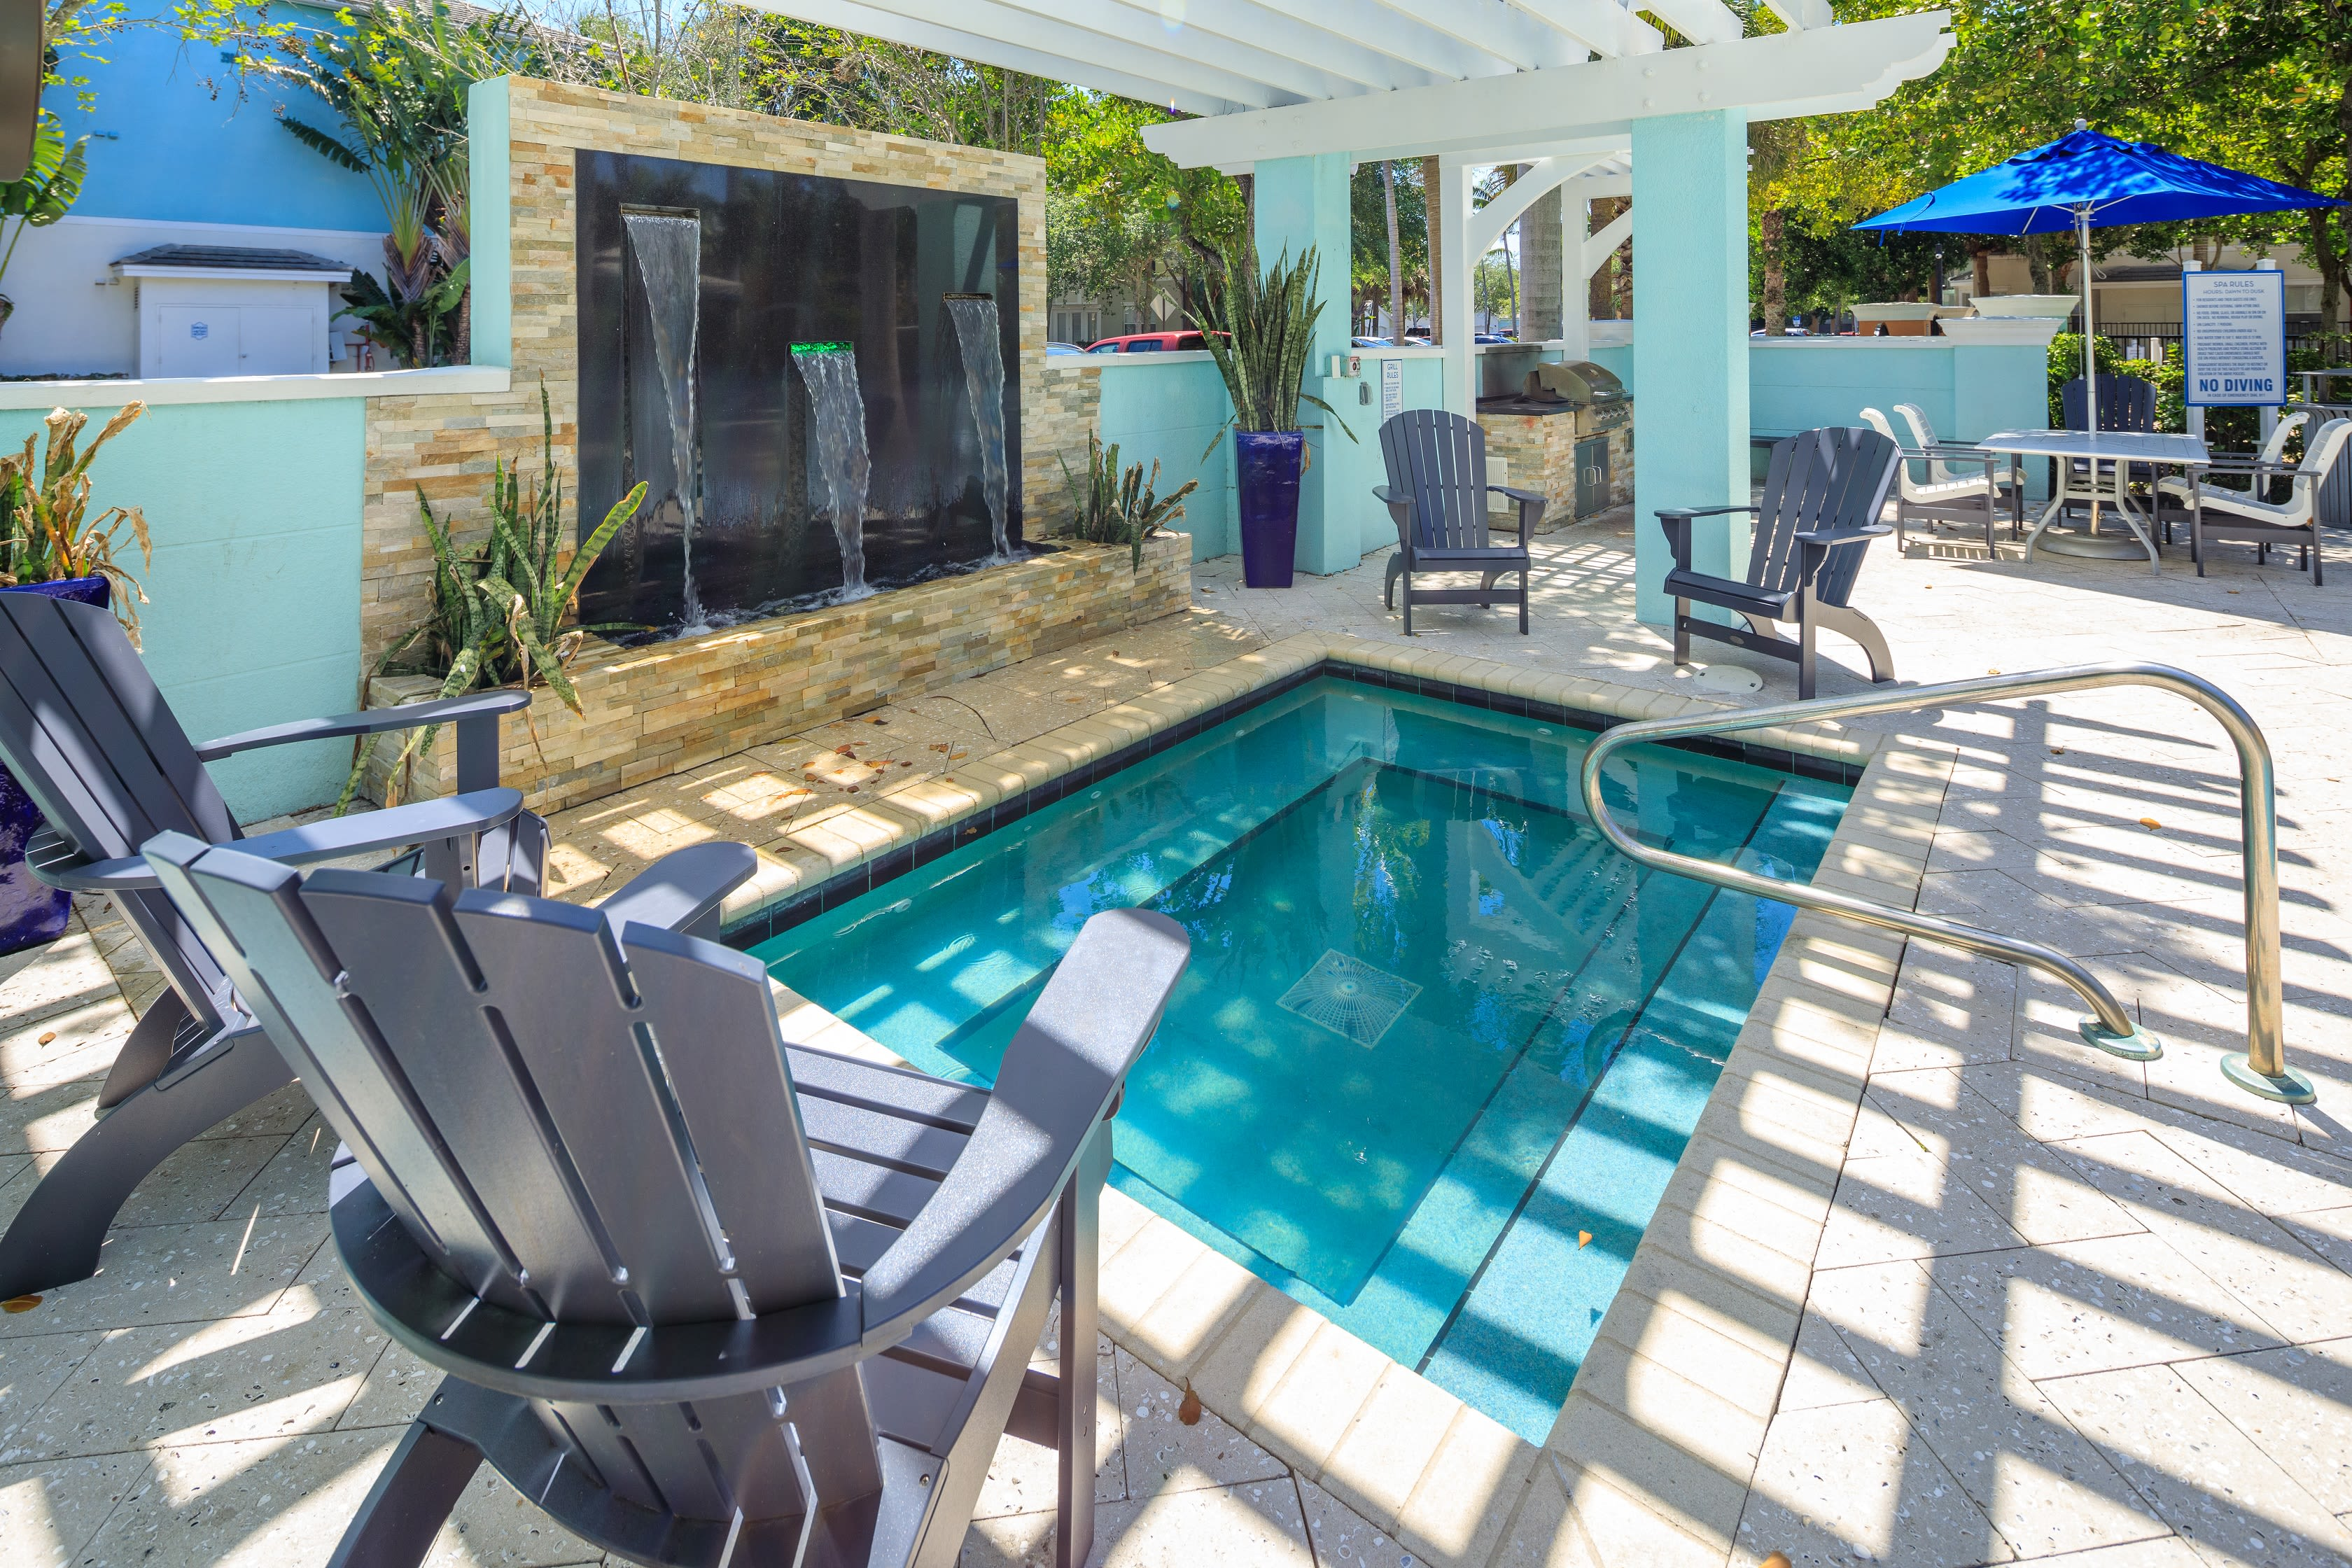 Outdoor area for residents to enjoy at The Pearl in Ft Lauderdale, Florida